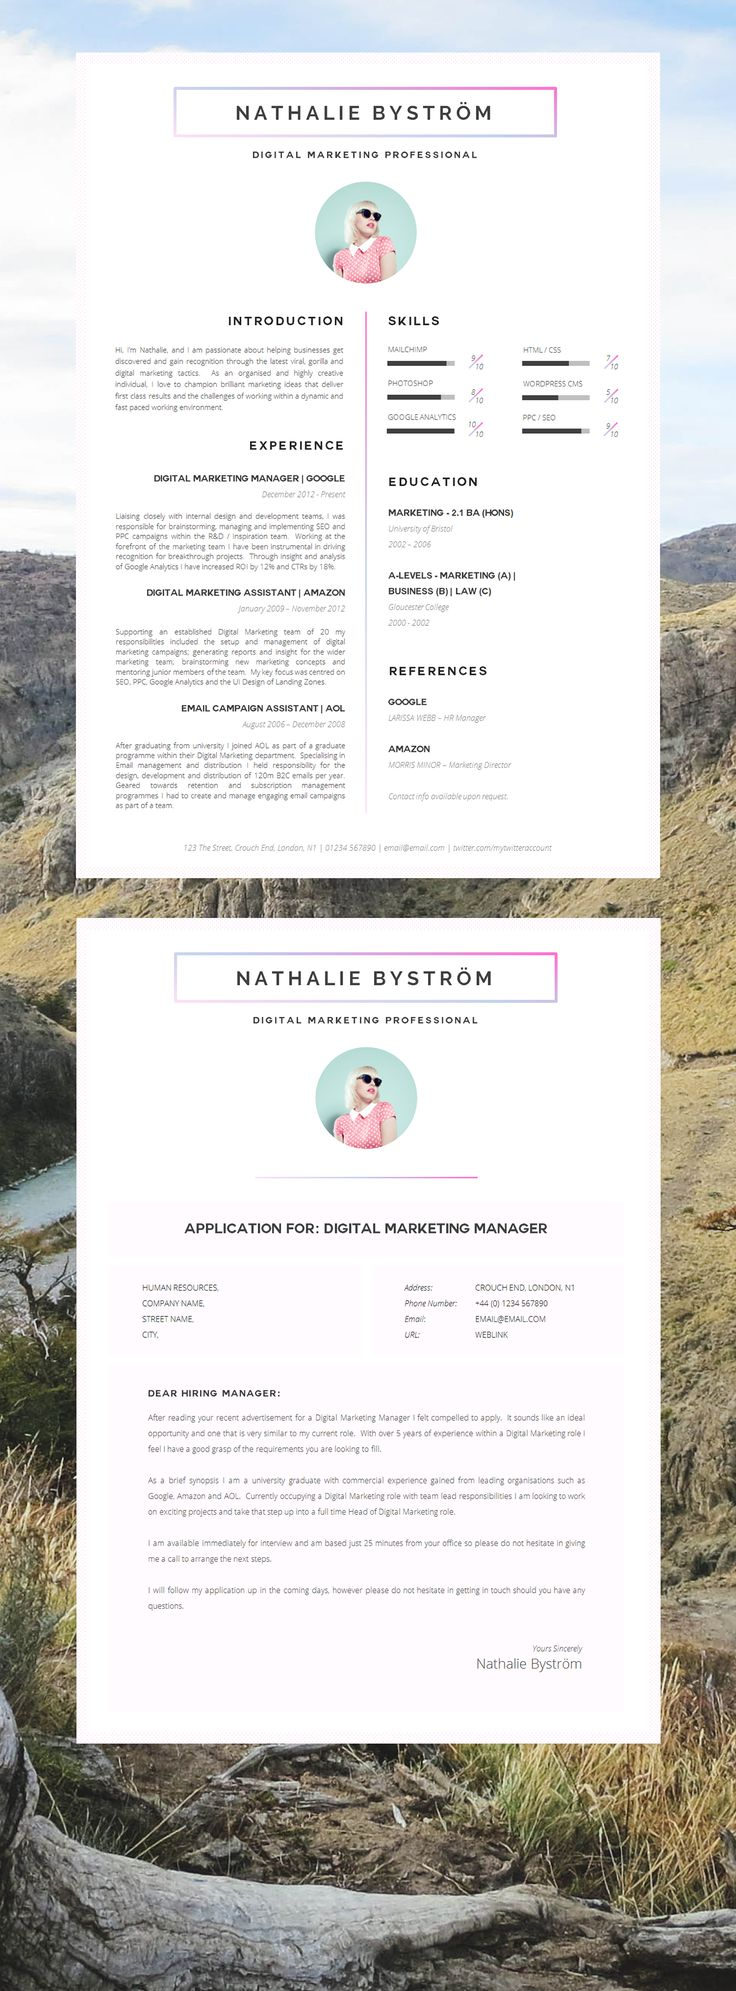 Creative CV - Stylish One Page Curriculum Vitae With Cover Letter.